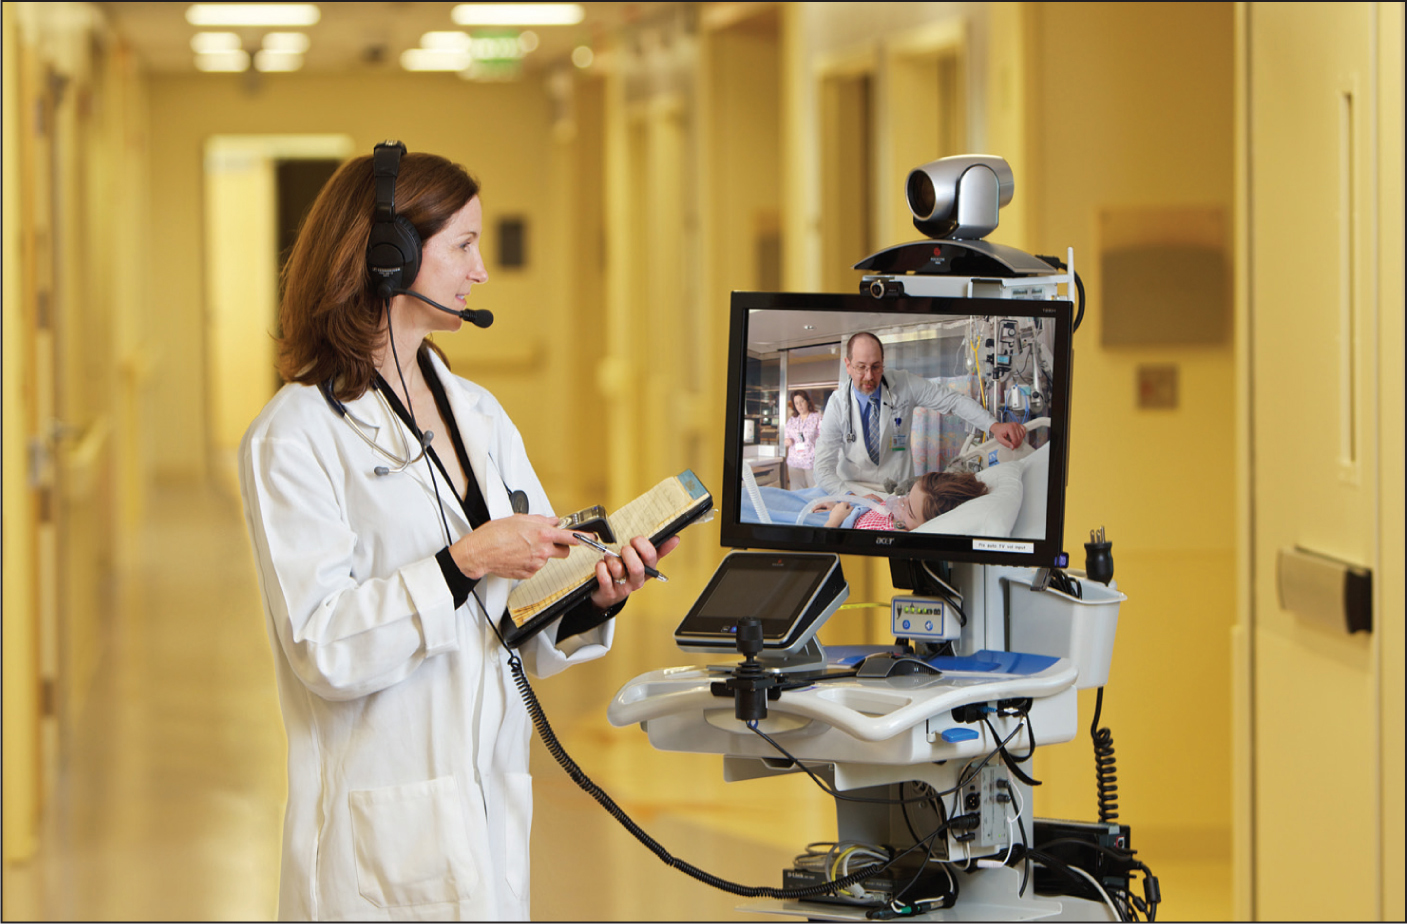 A variety of telemedicine endpoints are available to allow pediatric specialists to consult on children hospitalized at their community hospital.